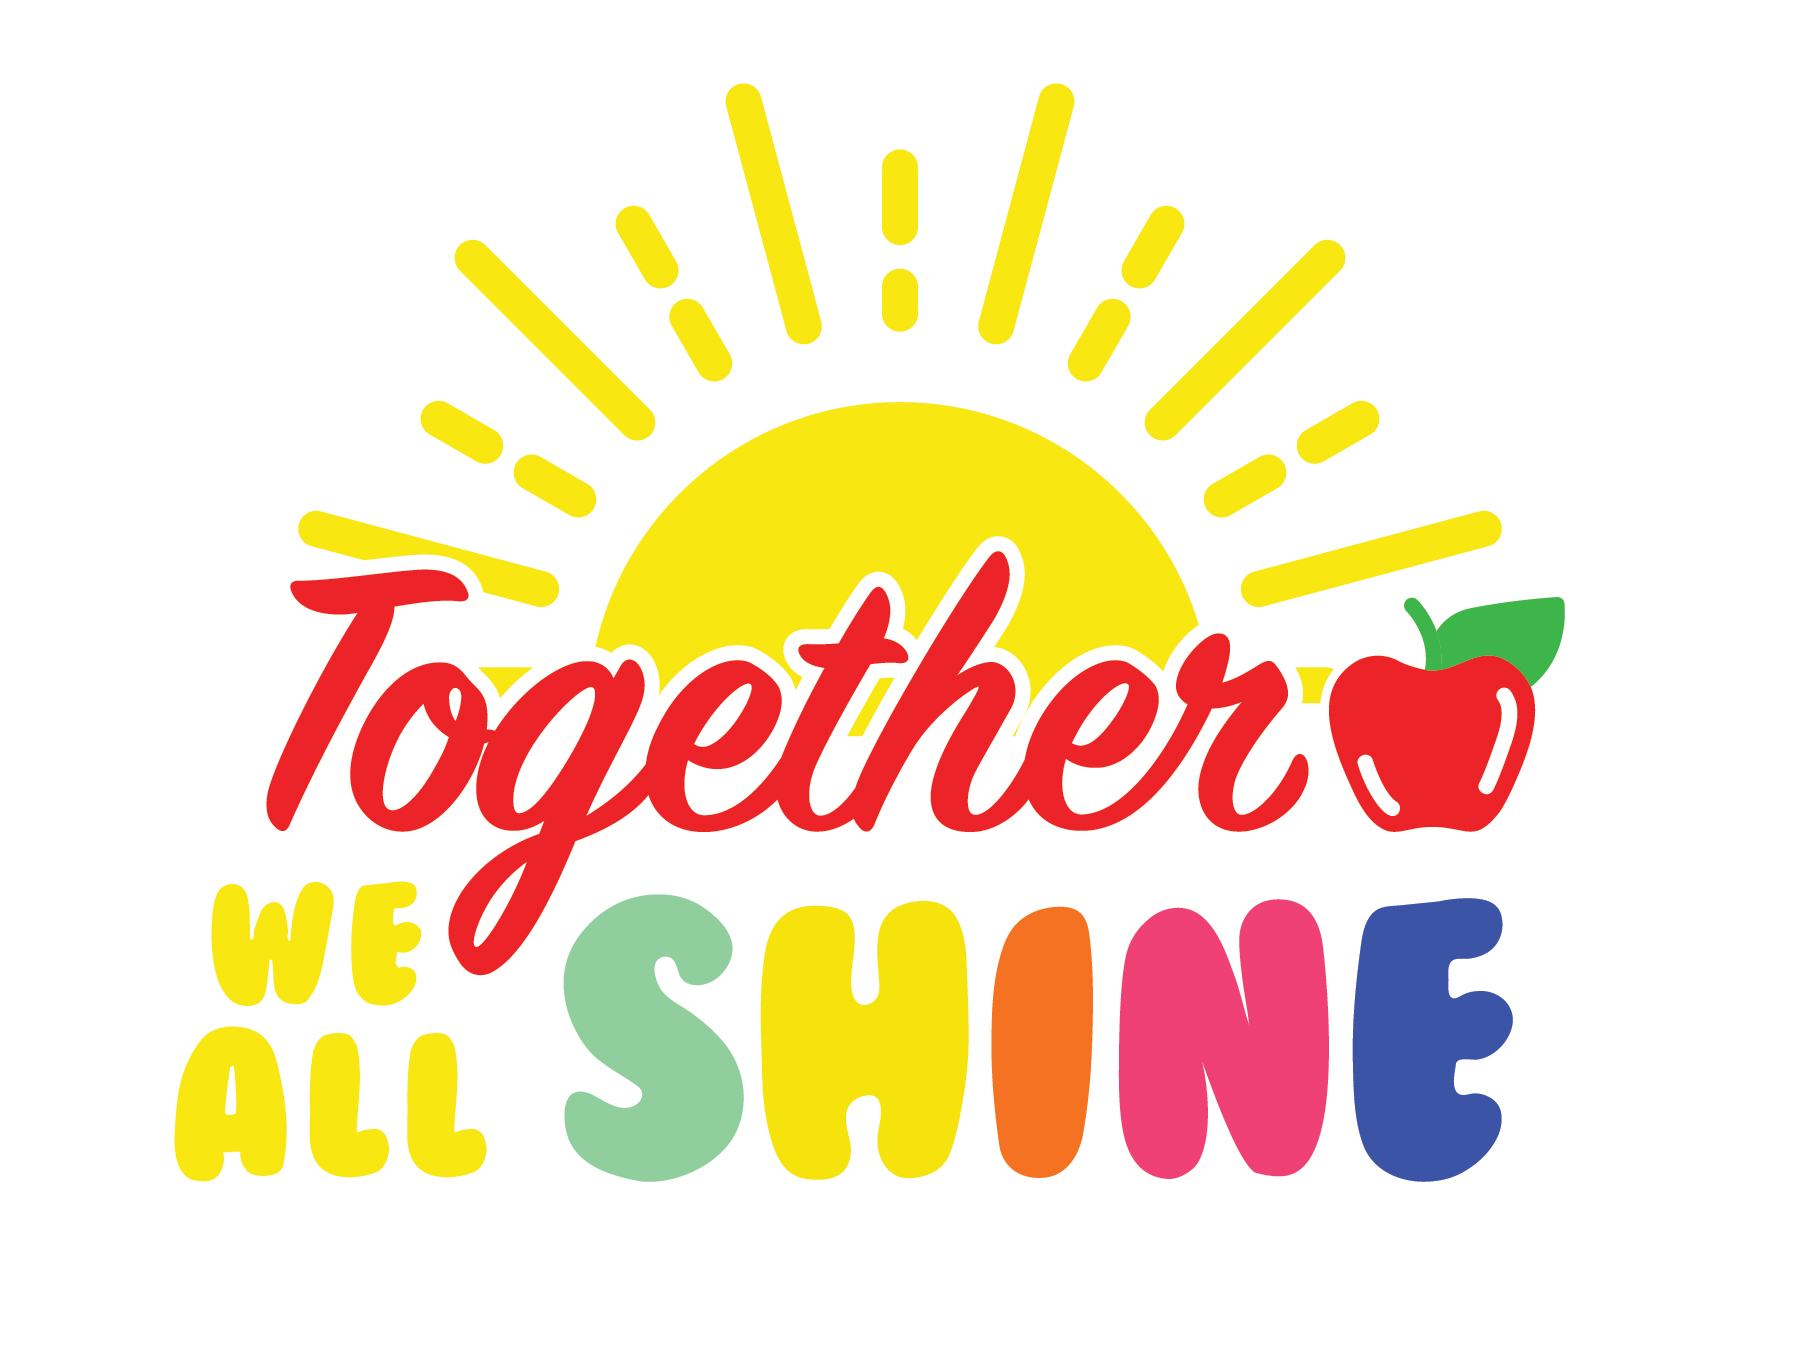 Images/together_we_all_shine_white-01.jpg